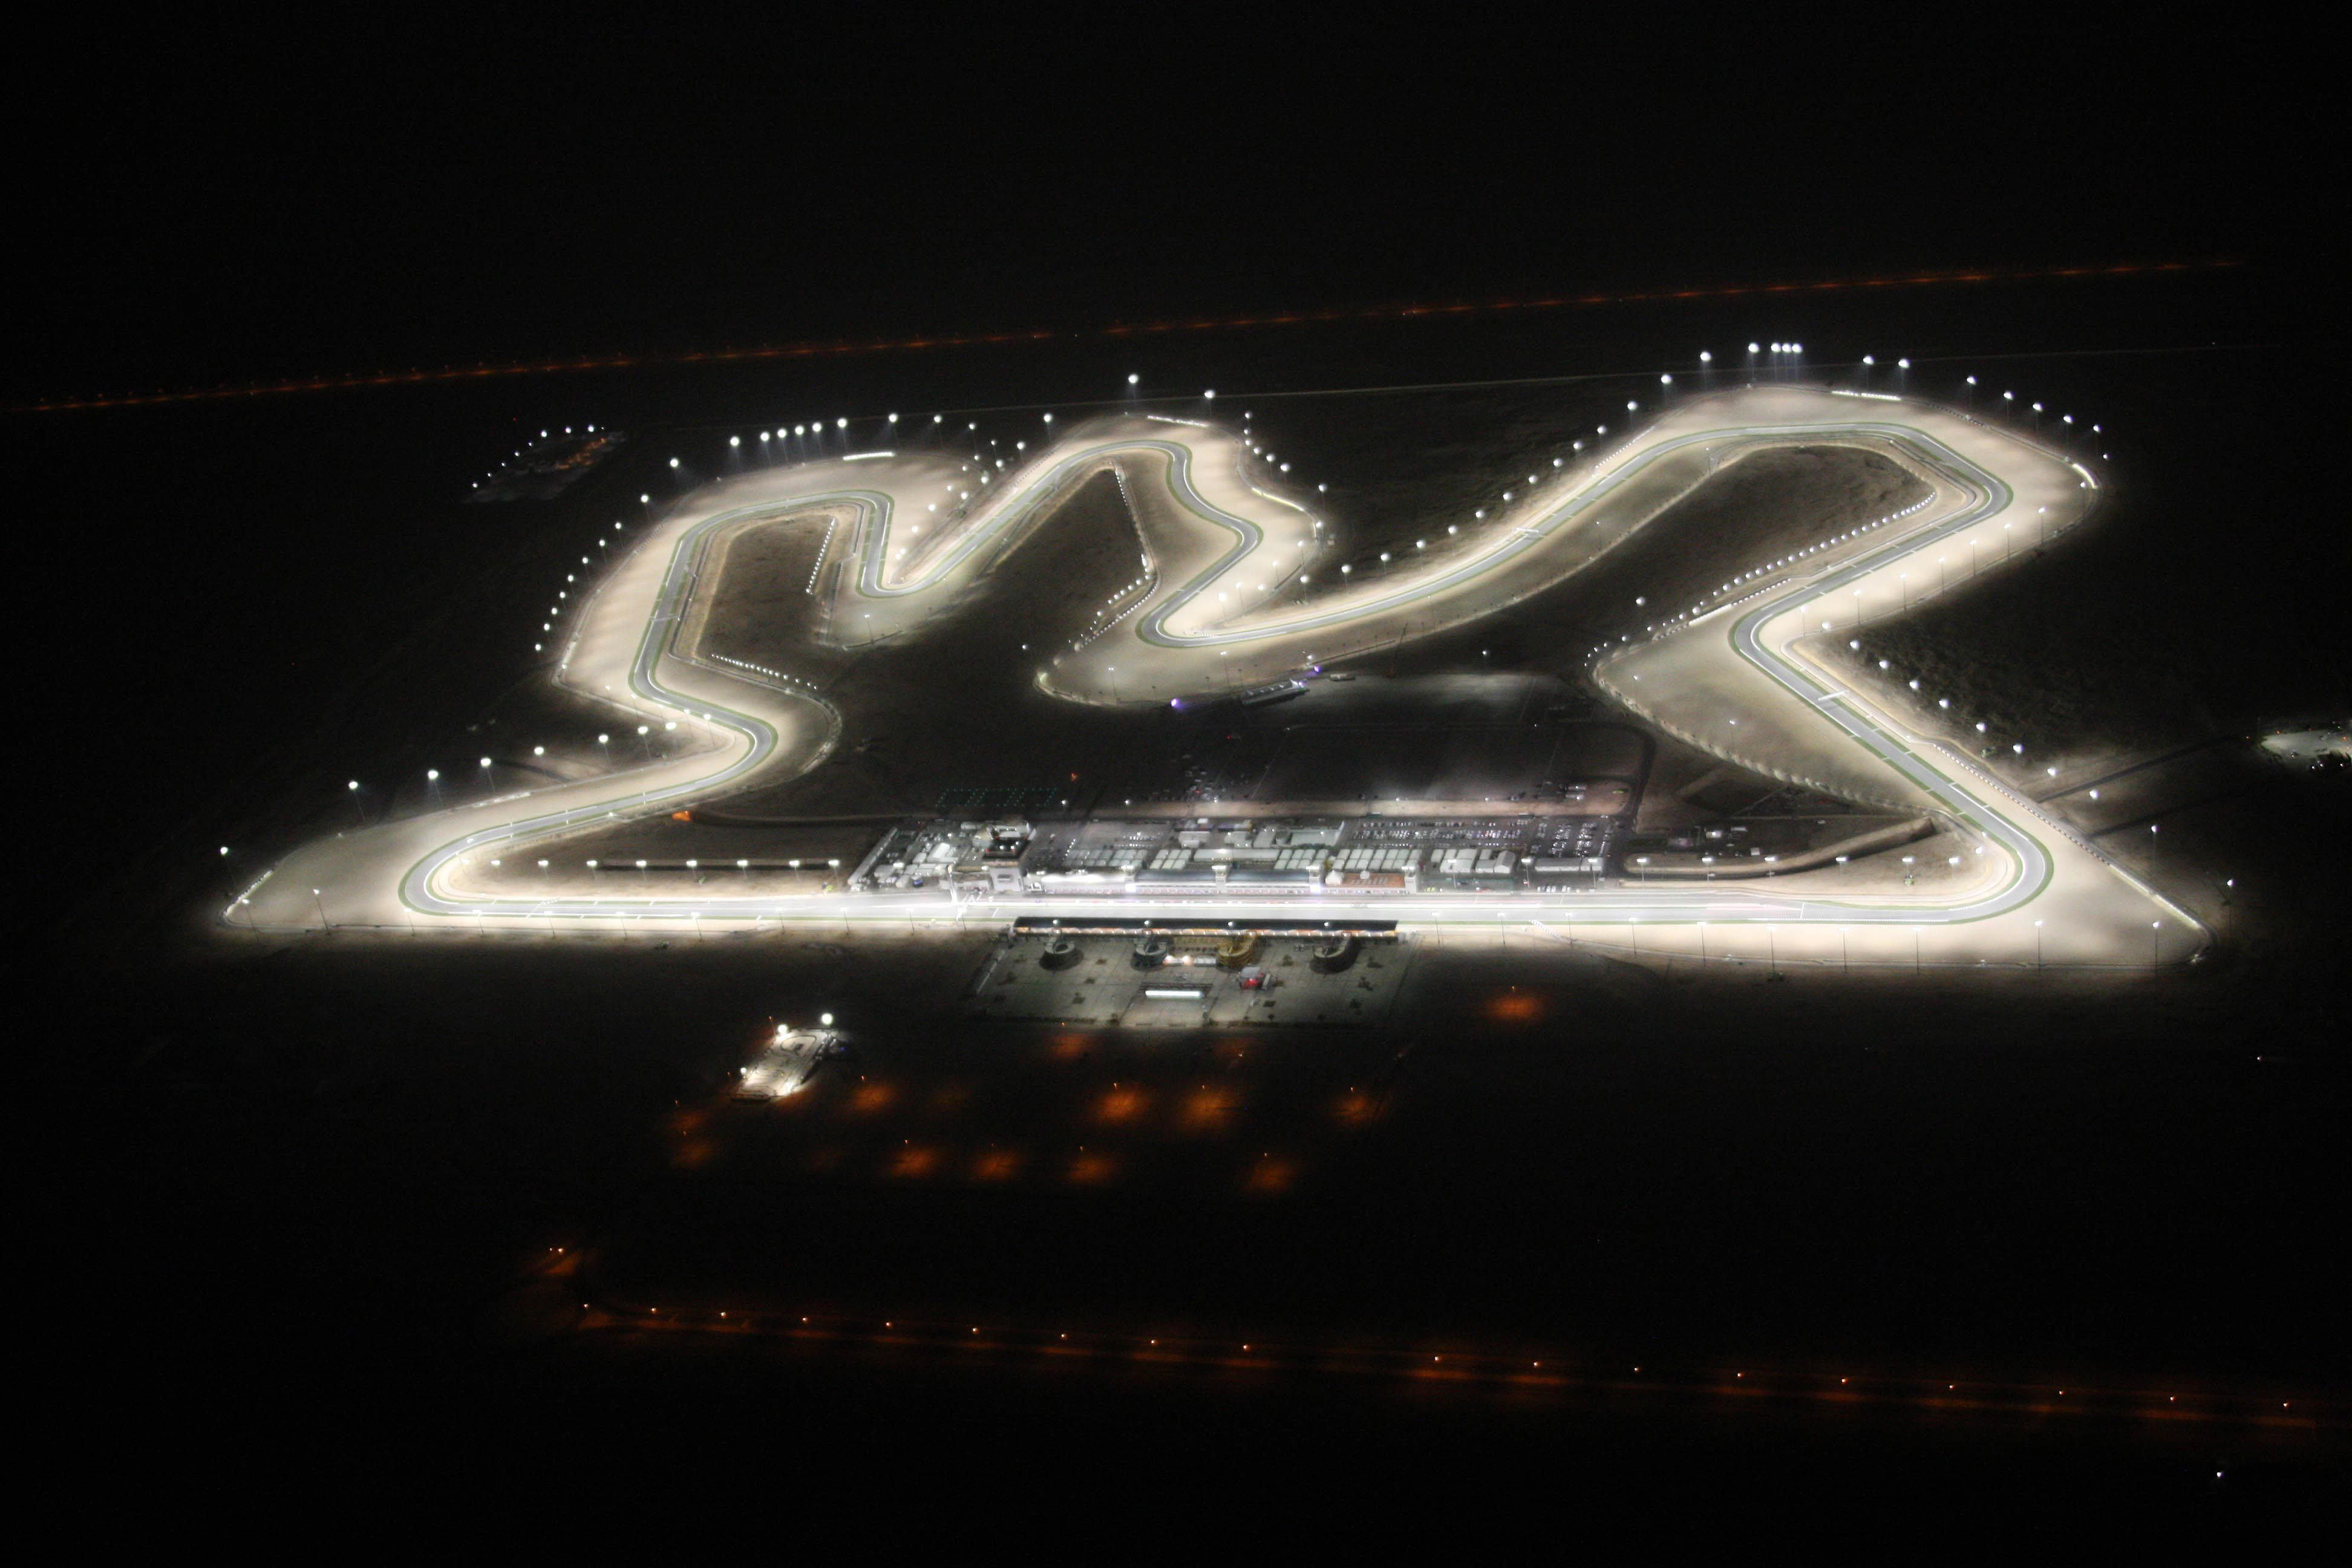 qatar gp motogp track circuit night